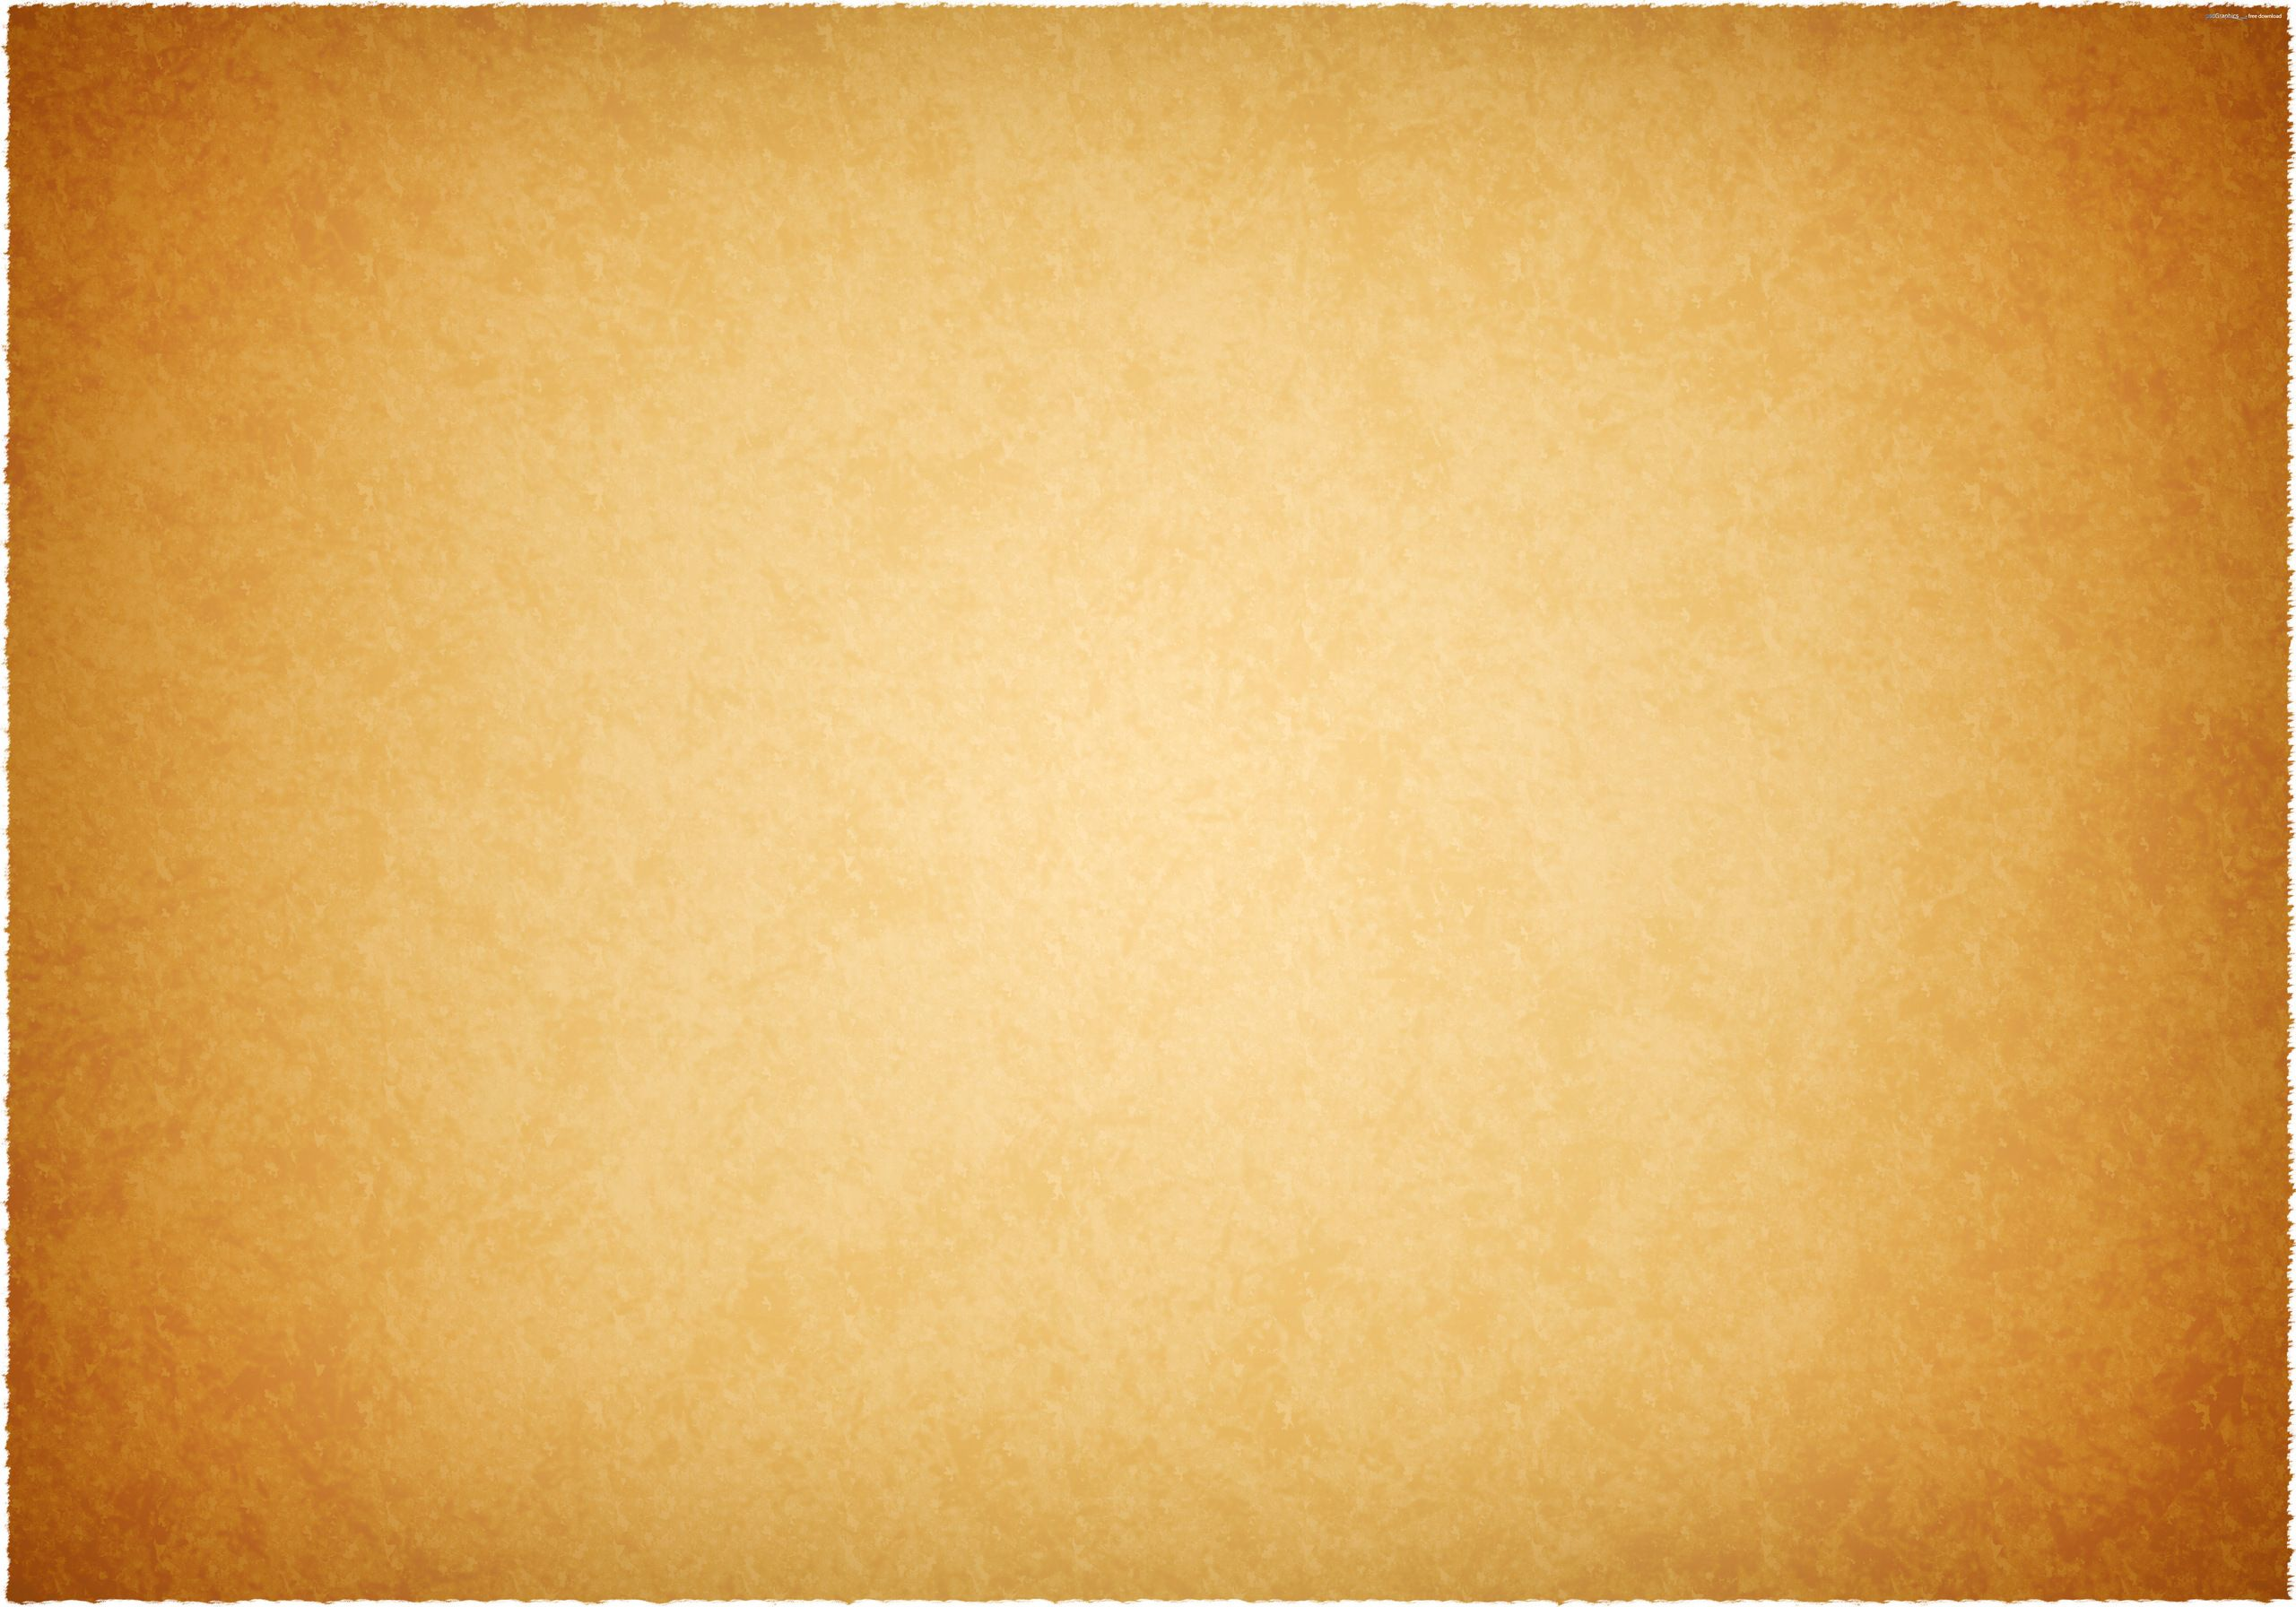 Paper Photo Paper Texture Old Paper Background Paper Texture Old Paper